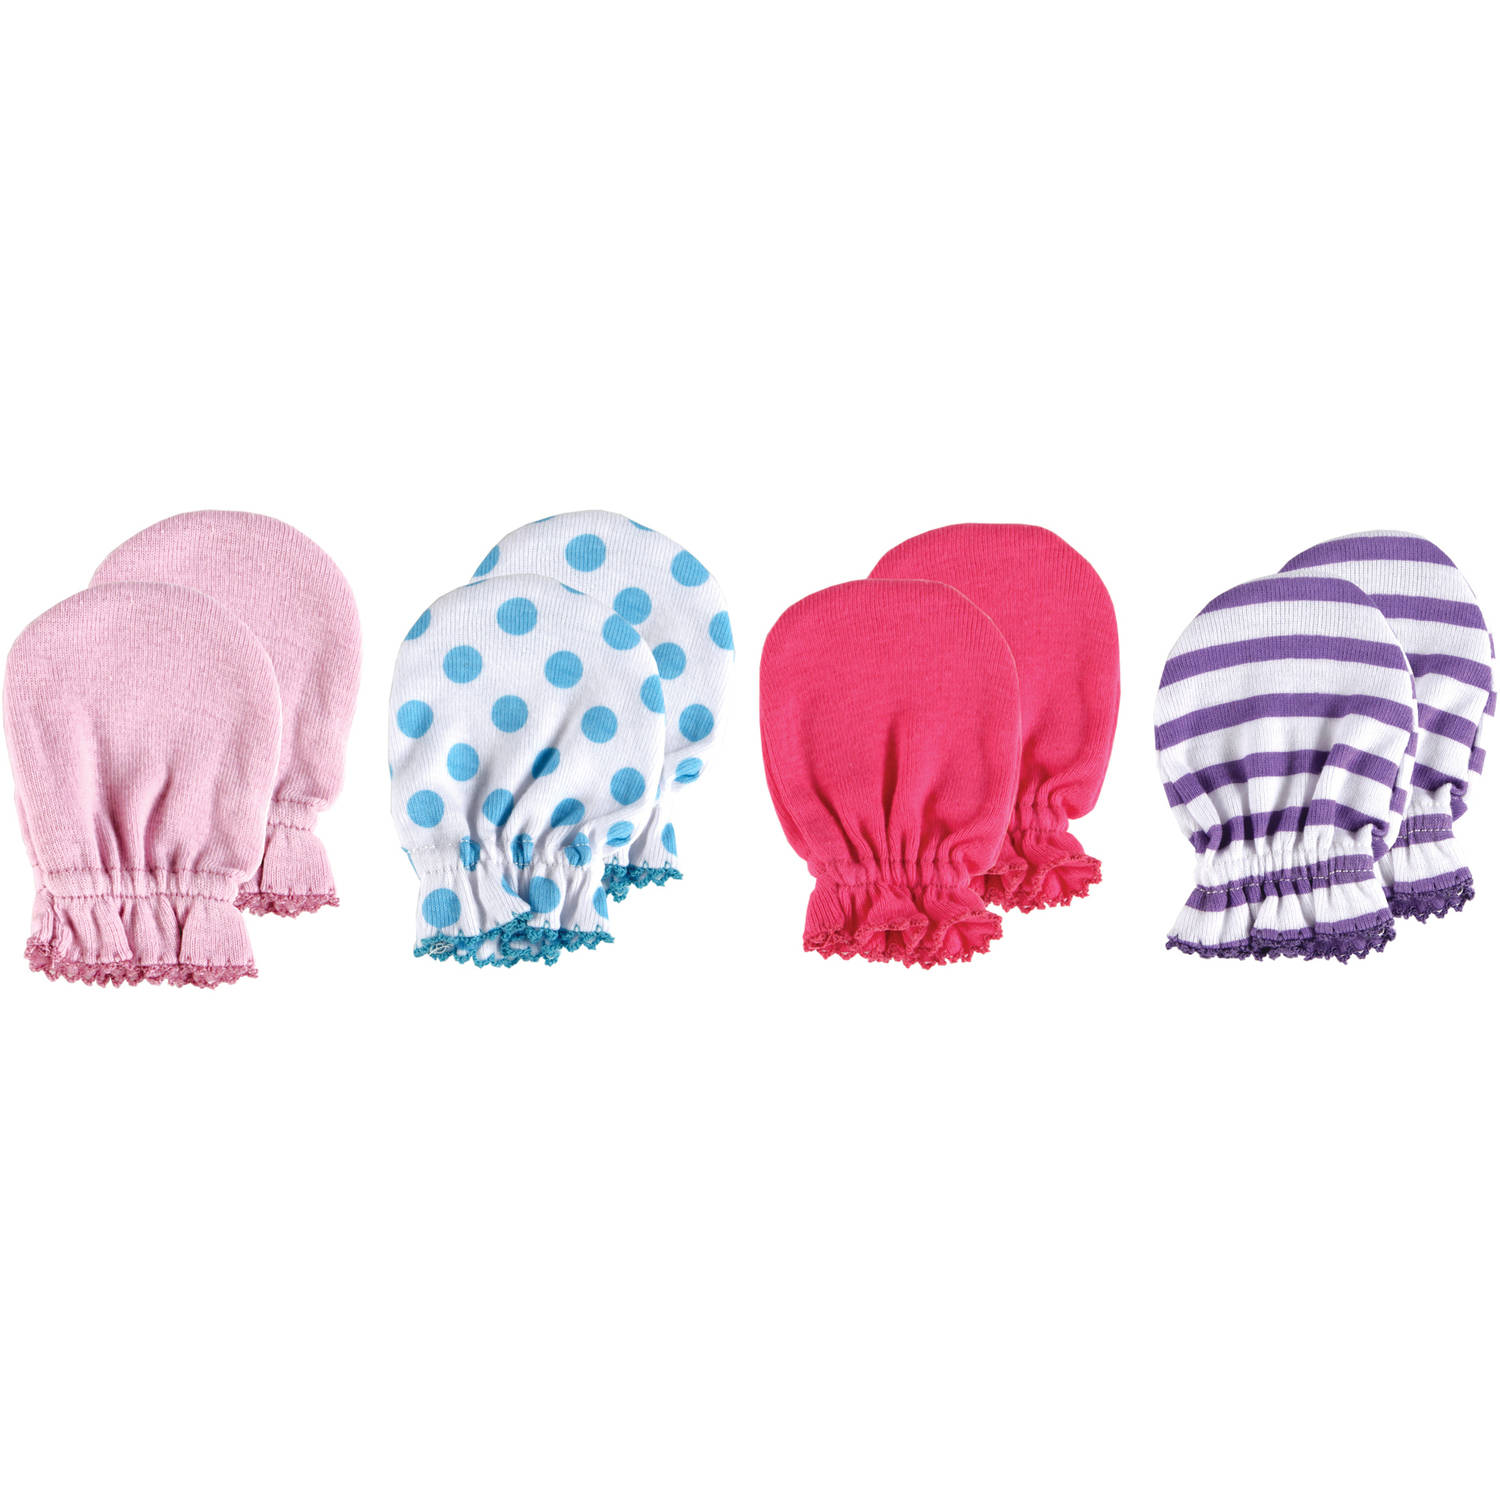 Newborn Baby Boys' and Girls' Scratch Mitten 4-Pack, 0-6 months, Choose Your Color